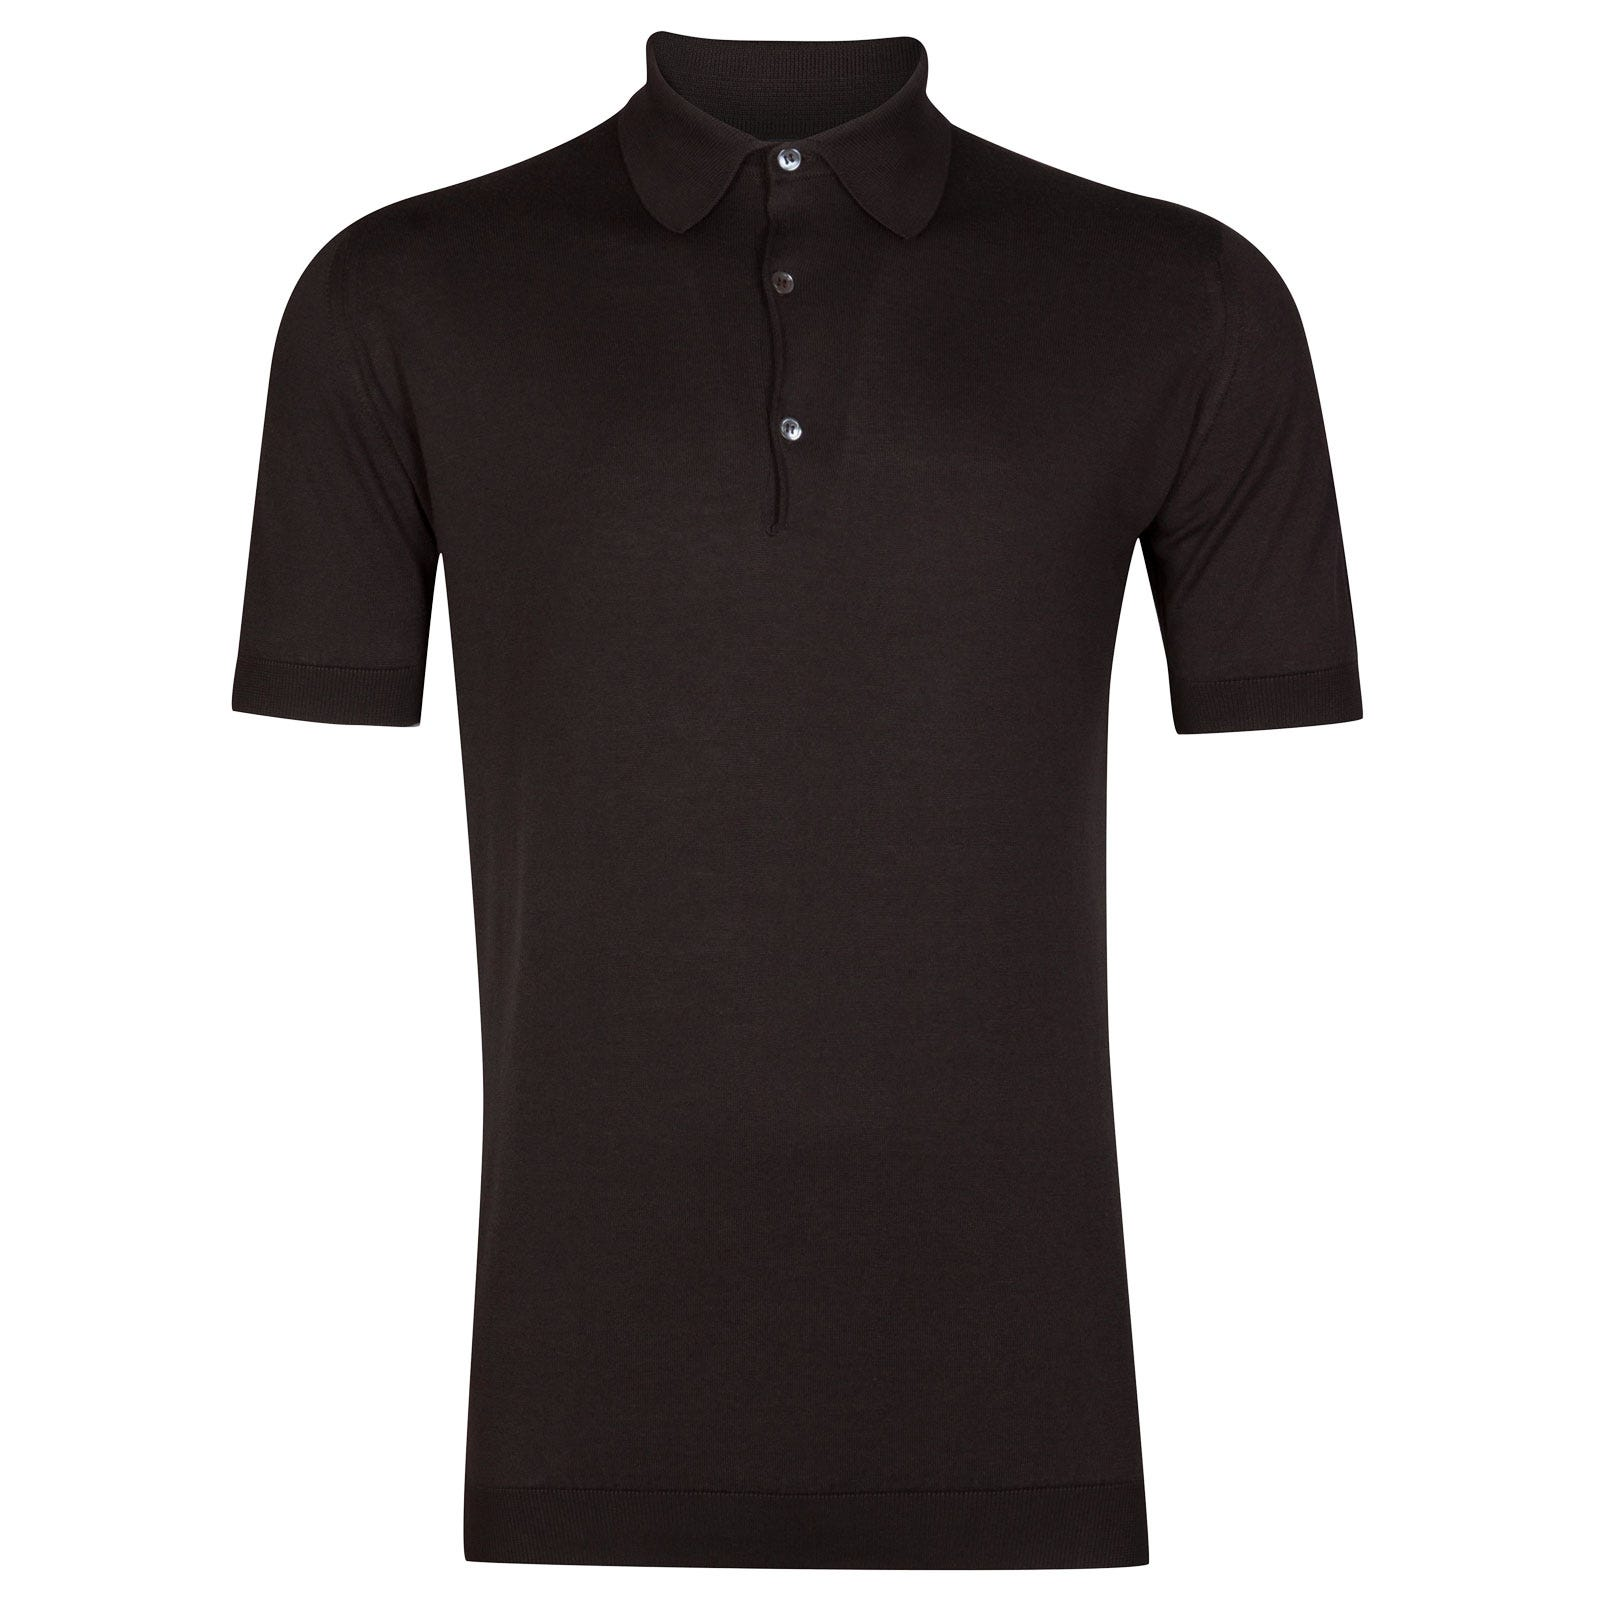 John Smedley Adrian in Dark Leather Shirt-XXL